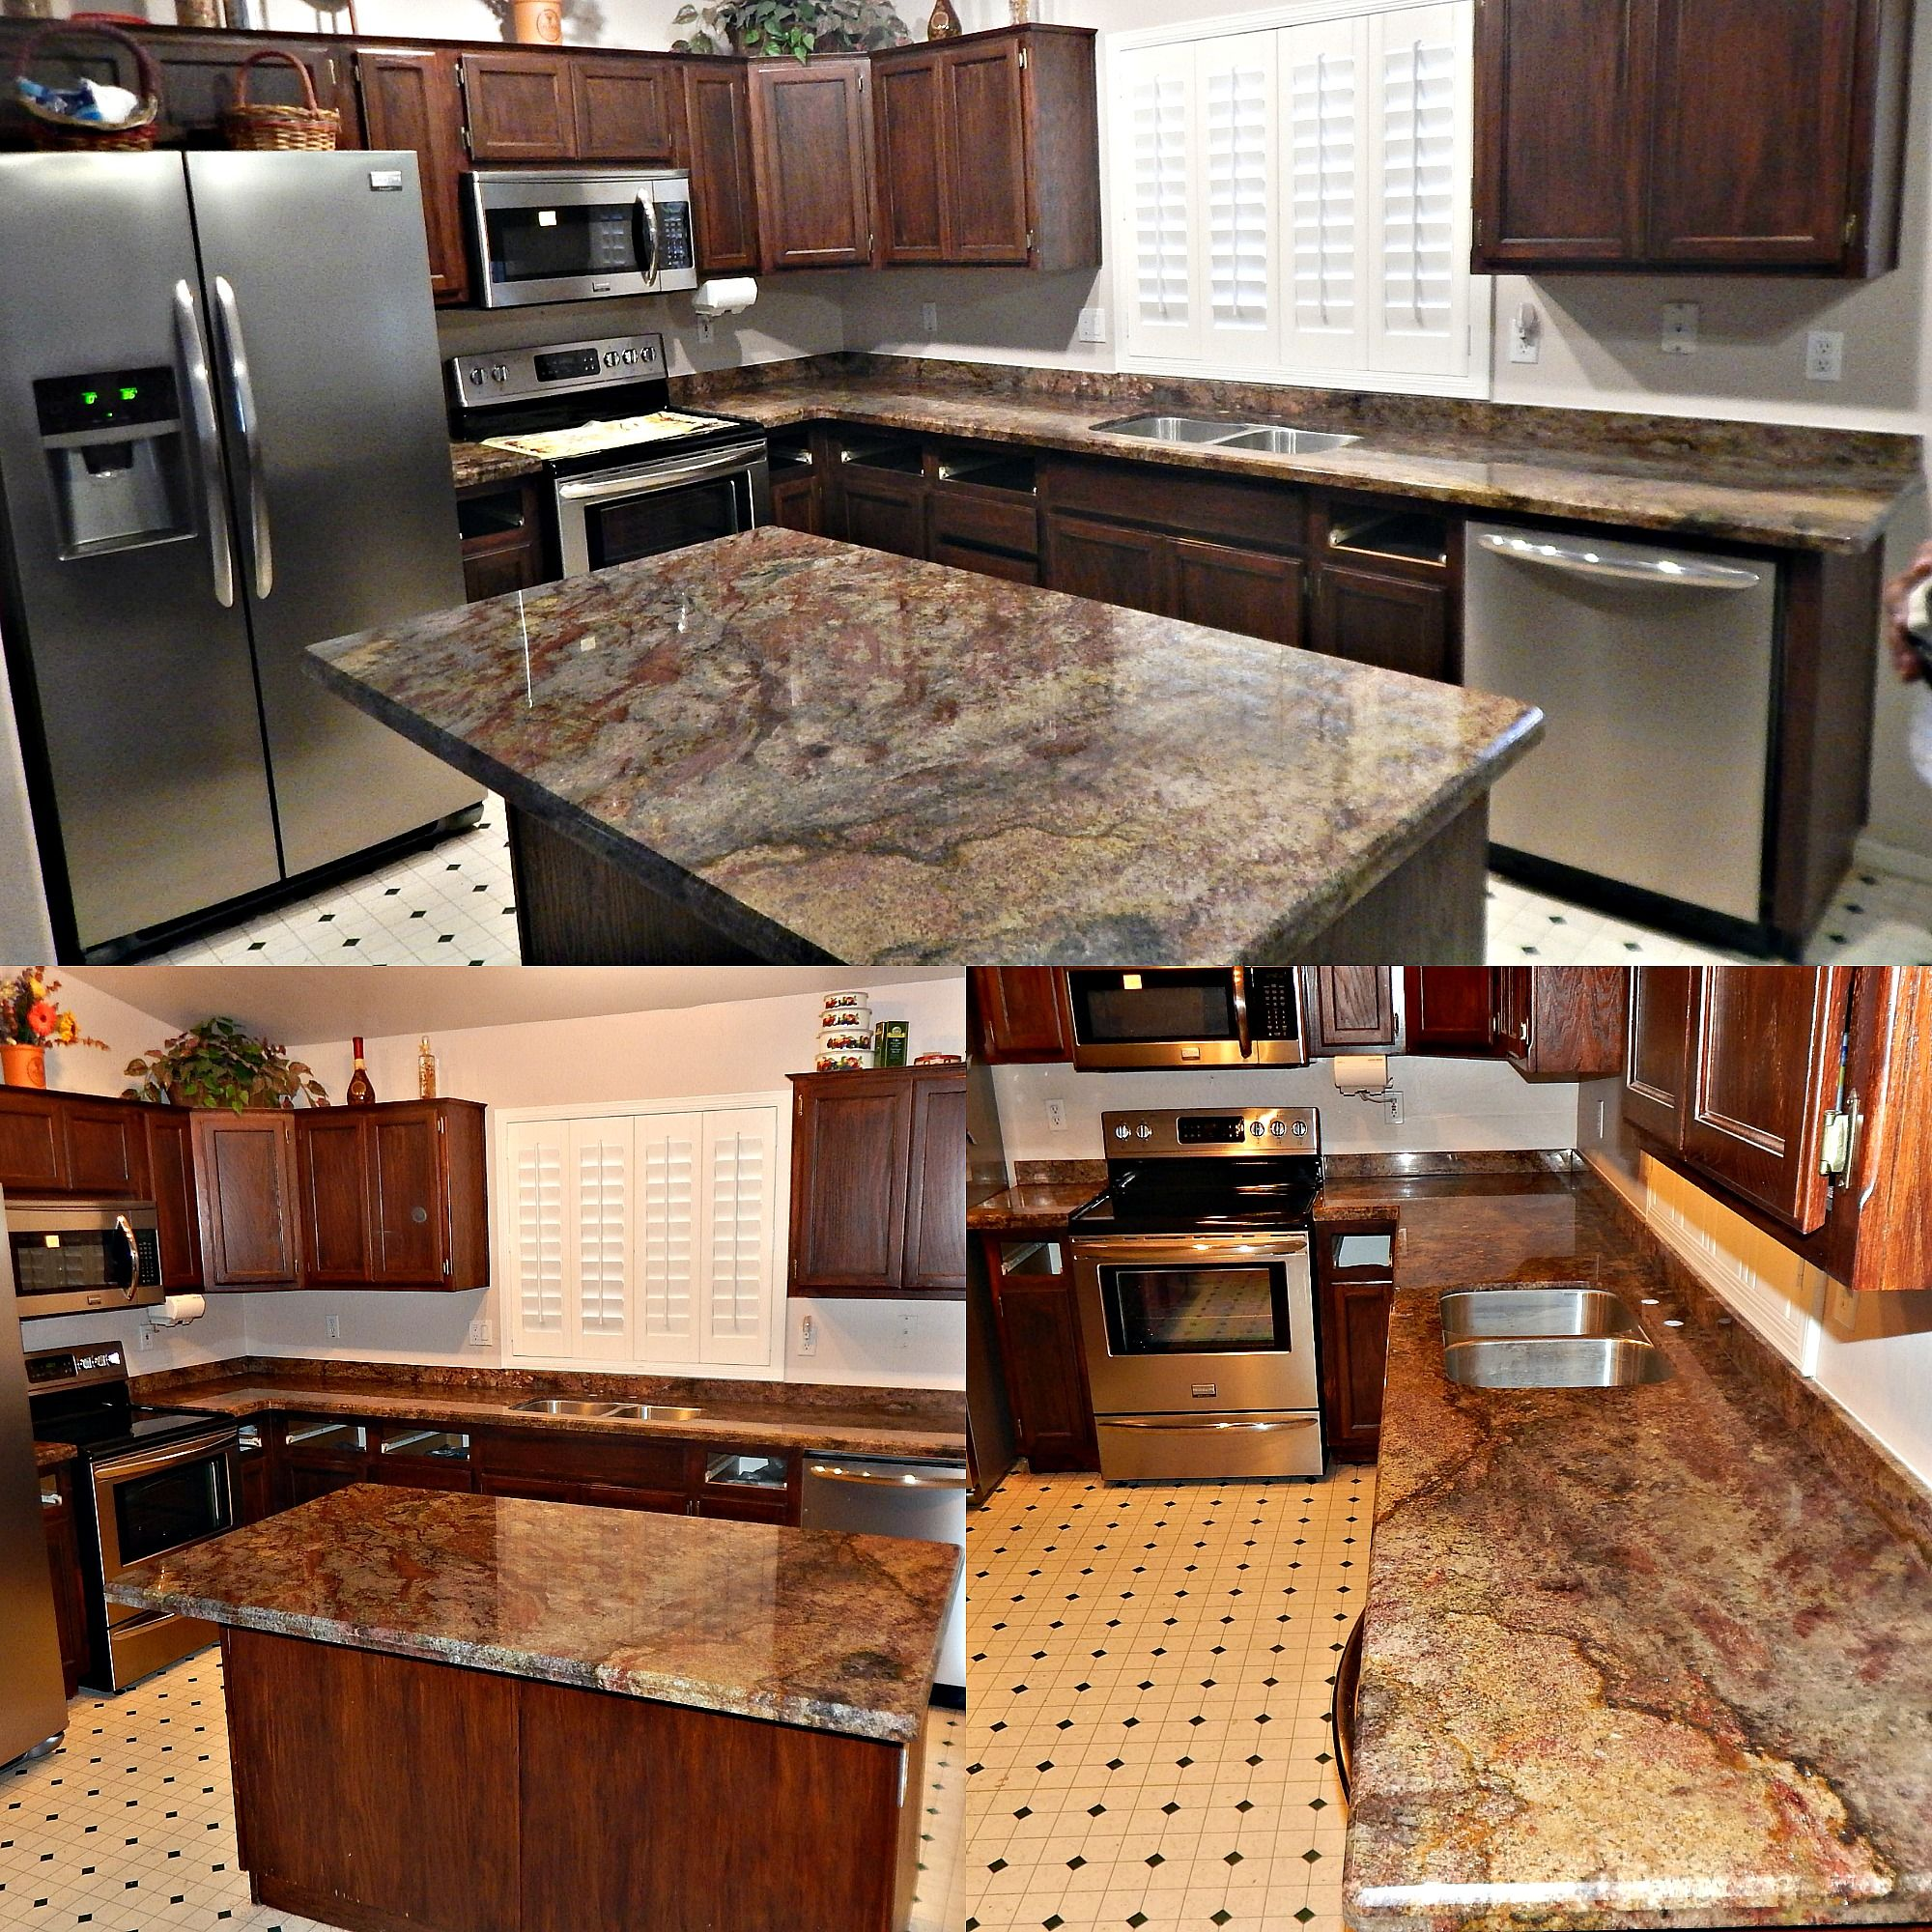 Montana Classic Granite Remodel With Bevel Edge, 50/50 Stainless Steel  Under Mount Sink